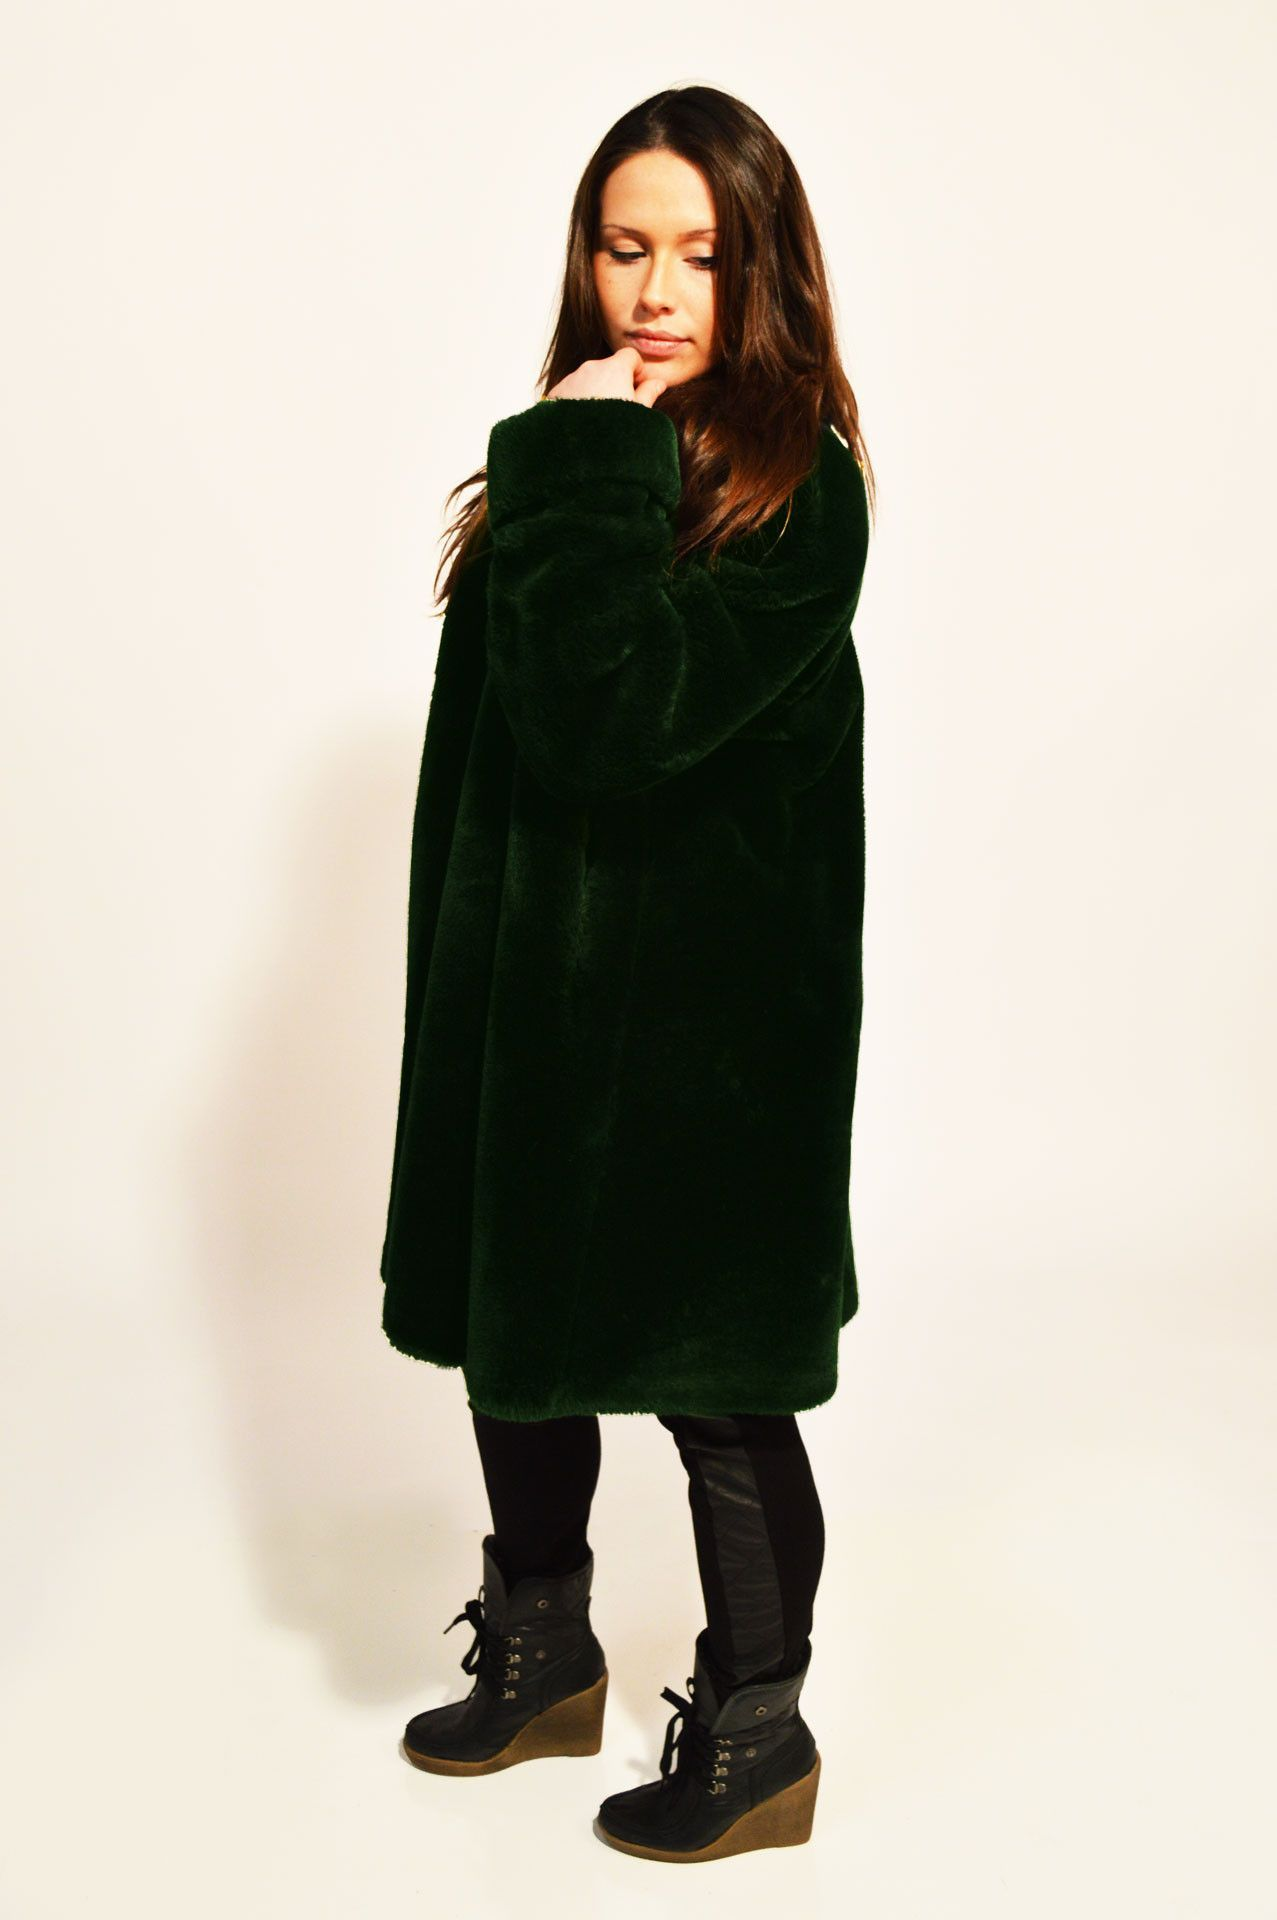 The Green Fur Coat